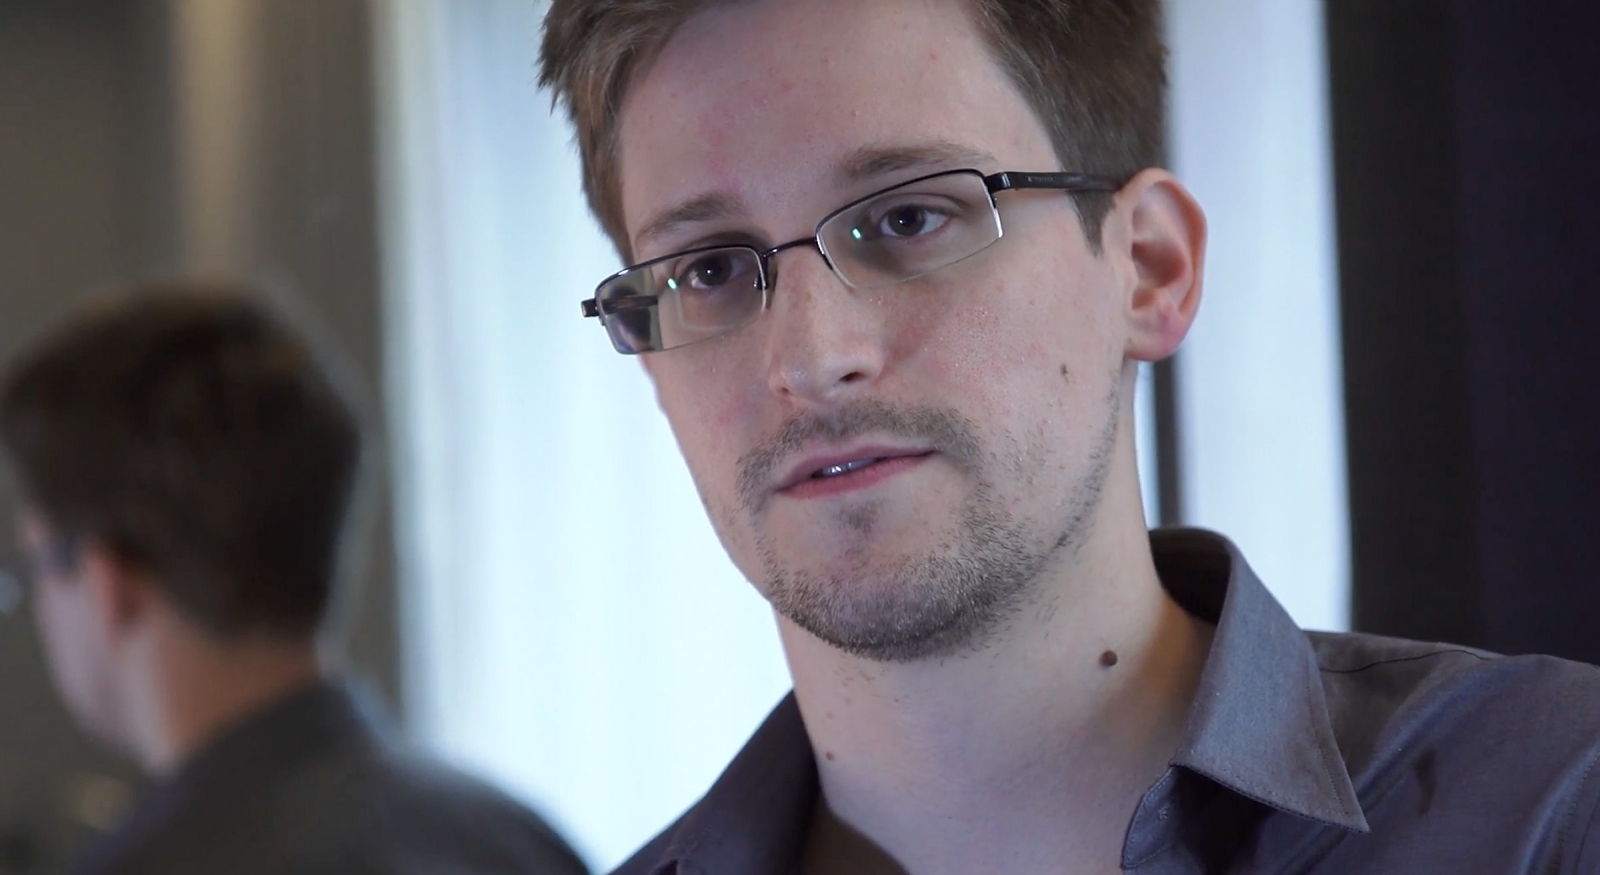 Russia 'considering returning Edward Snowden' to US